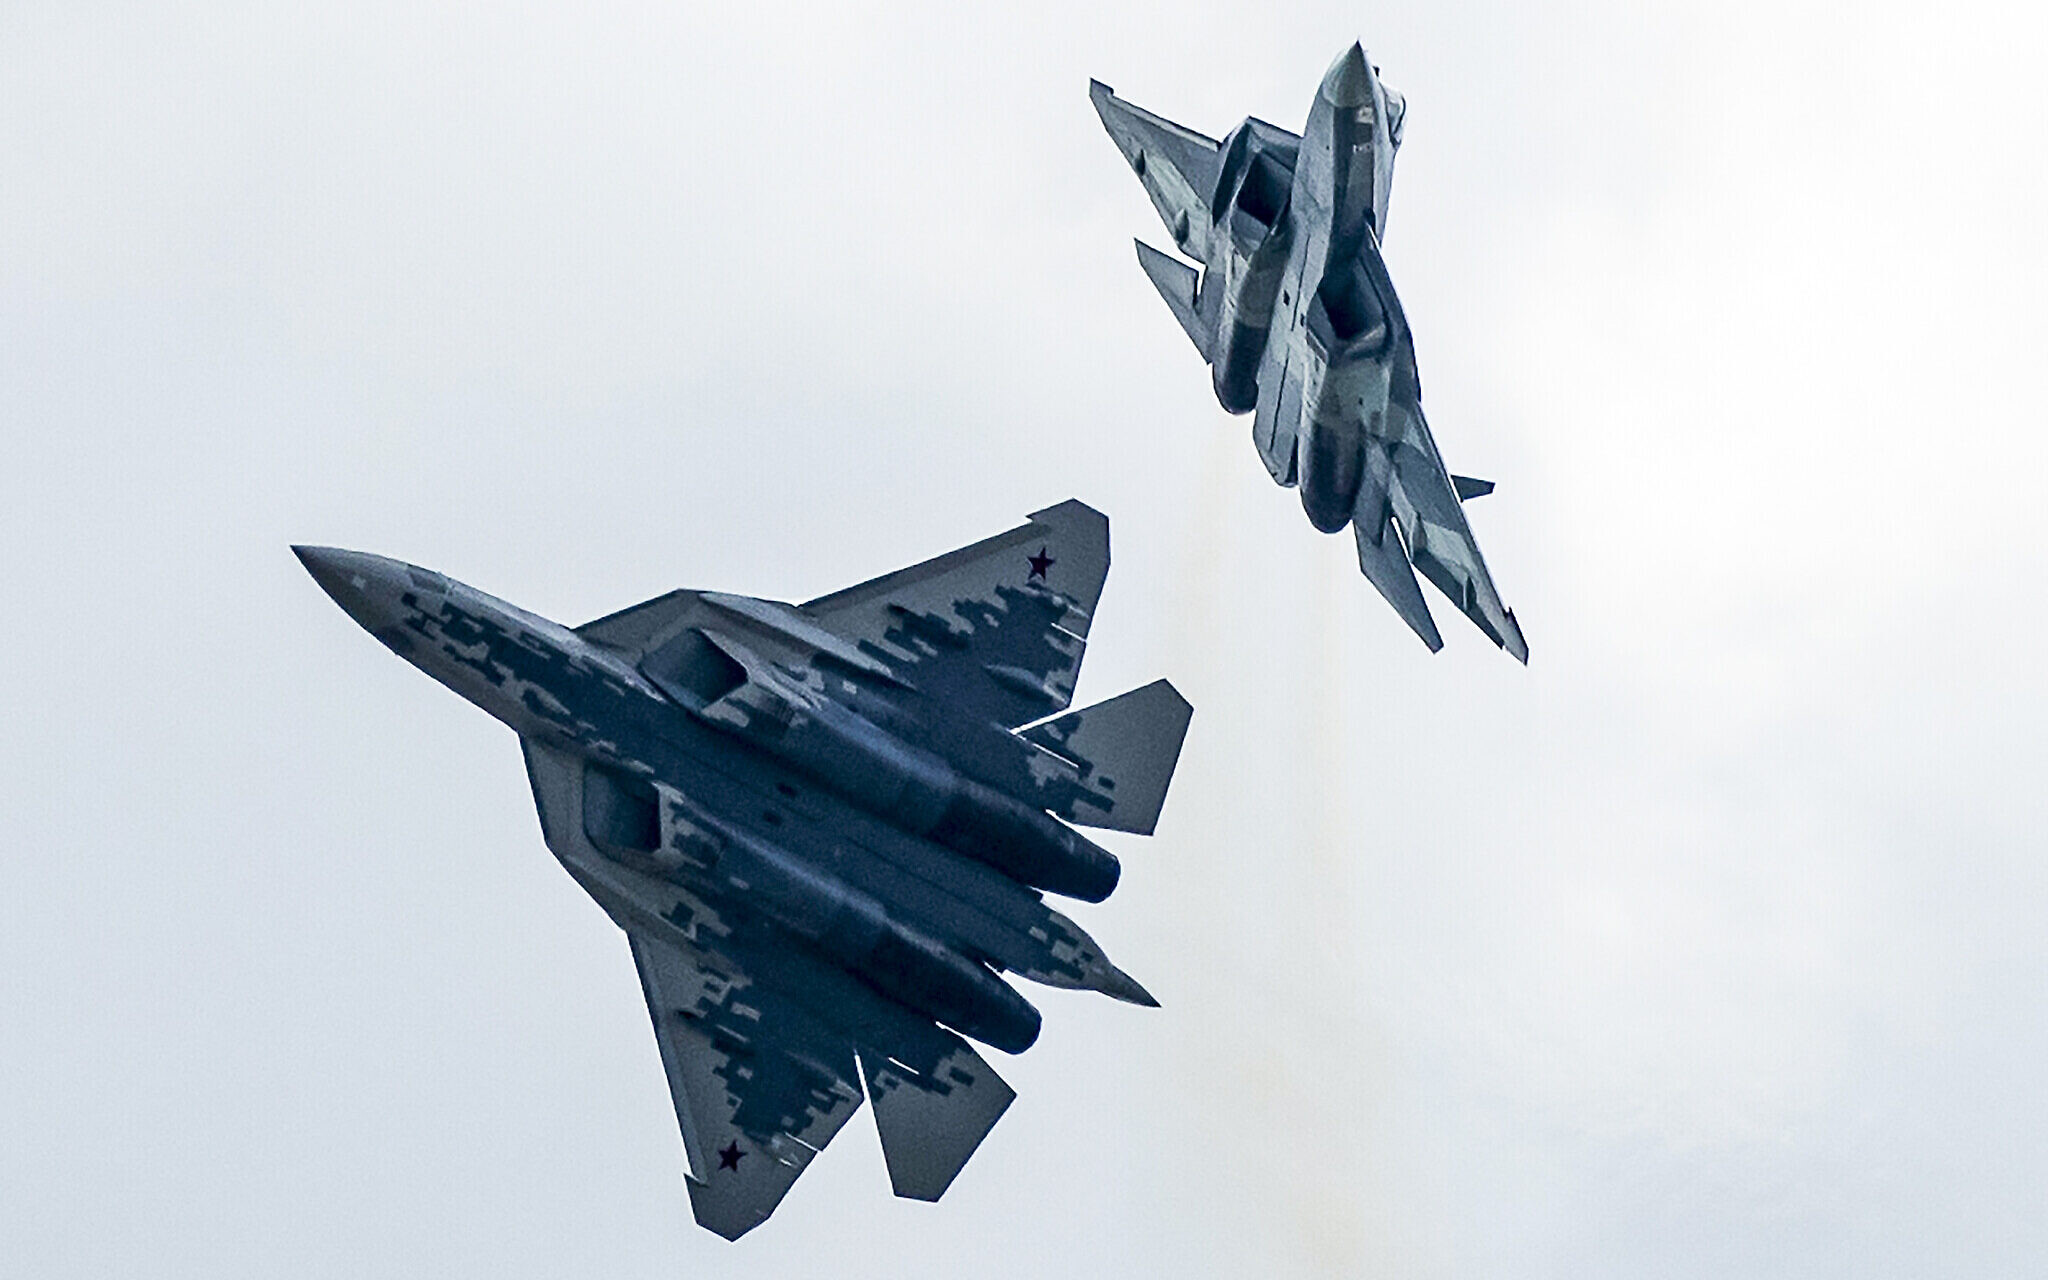 Russia Needs To Continue Working Towards Air Superiority: Aerospace Forces Commander